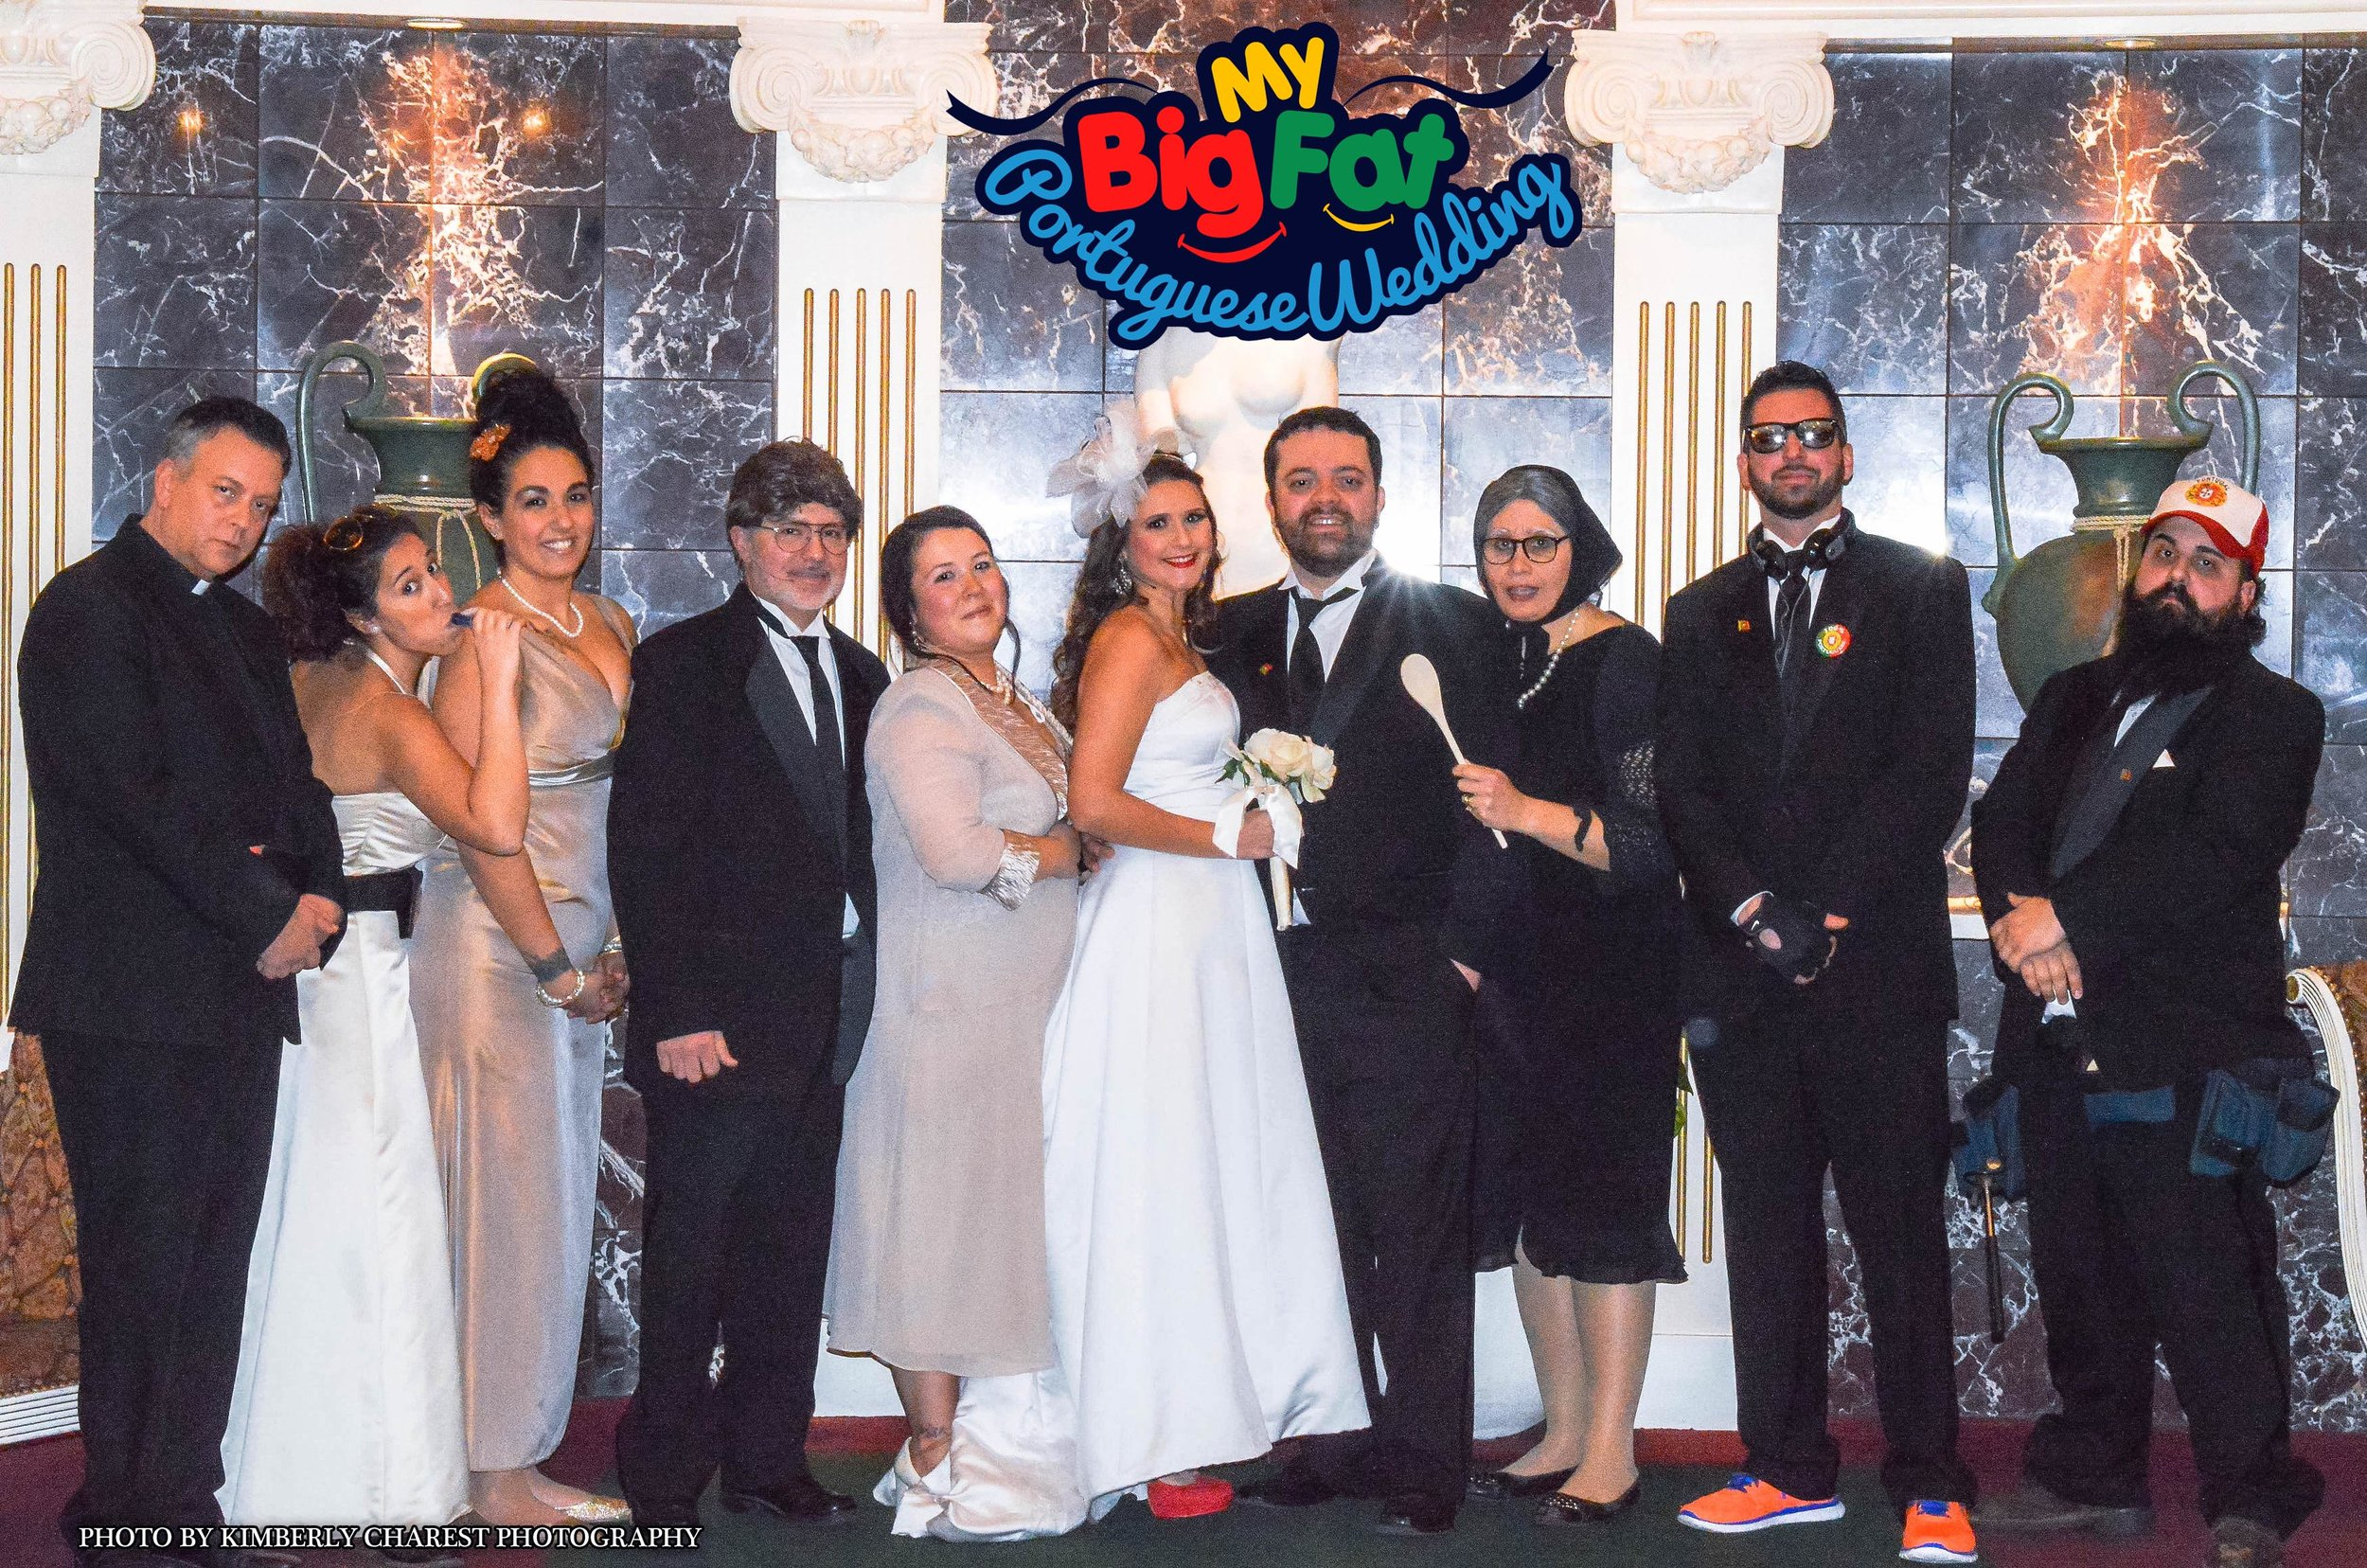 THE CRAZIEST WEDDING YOU'LL EVER BE A PART OF!